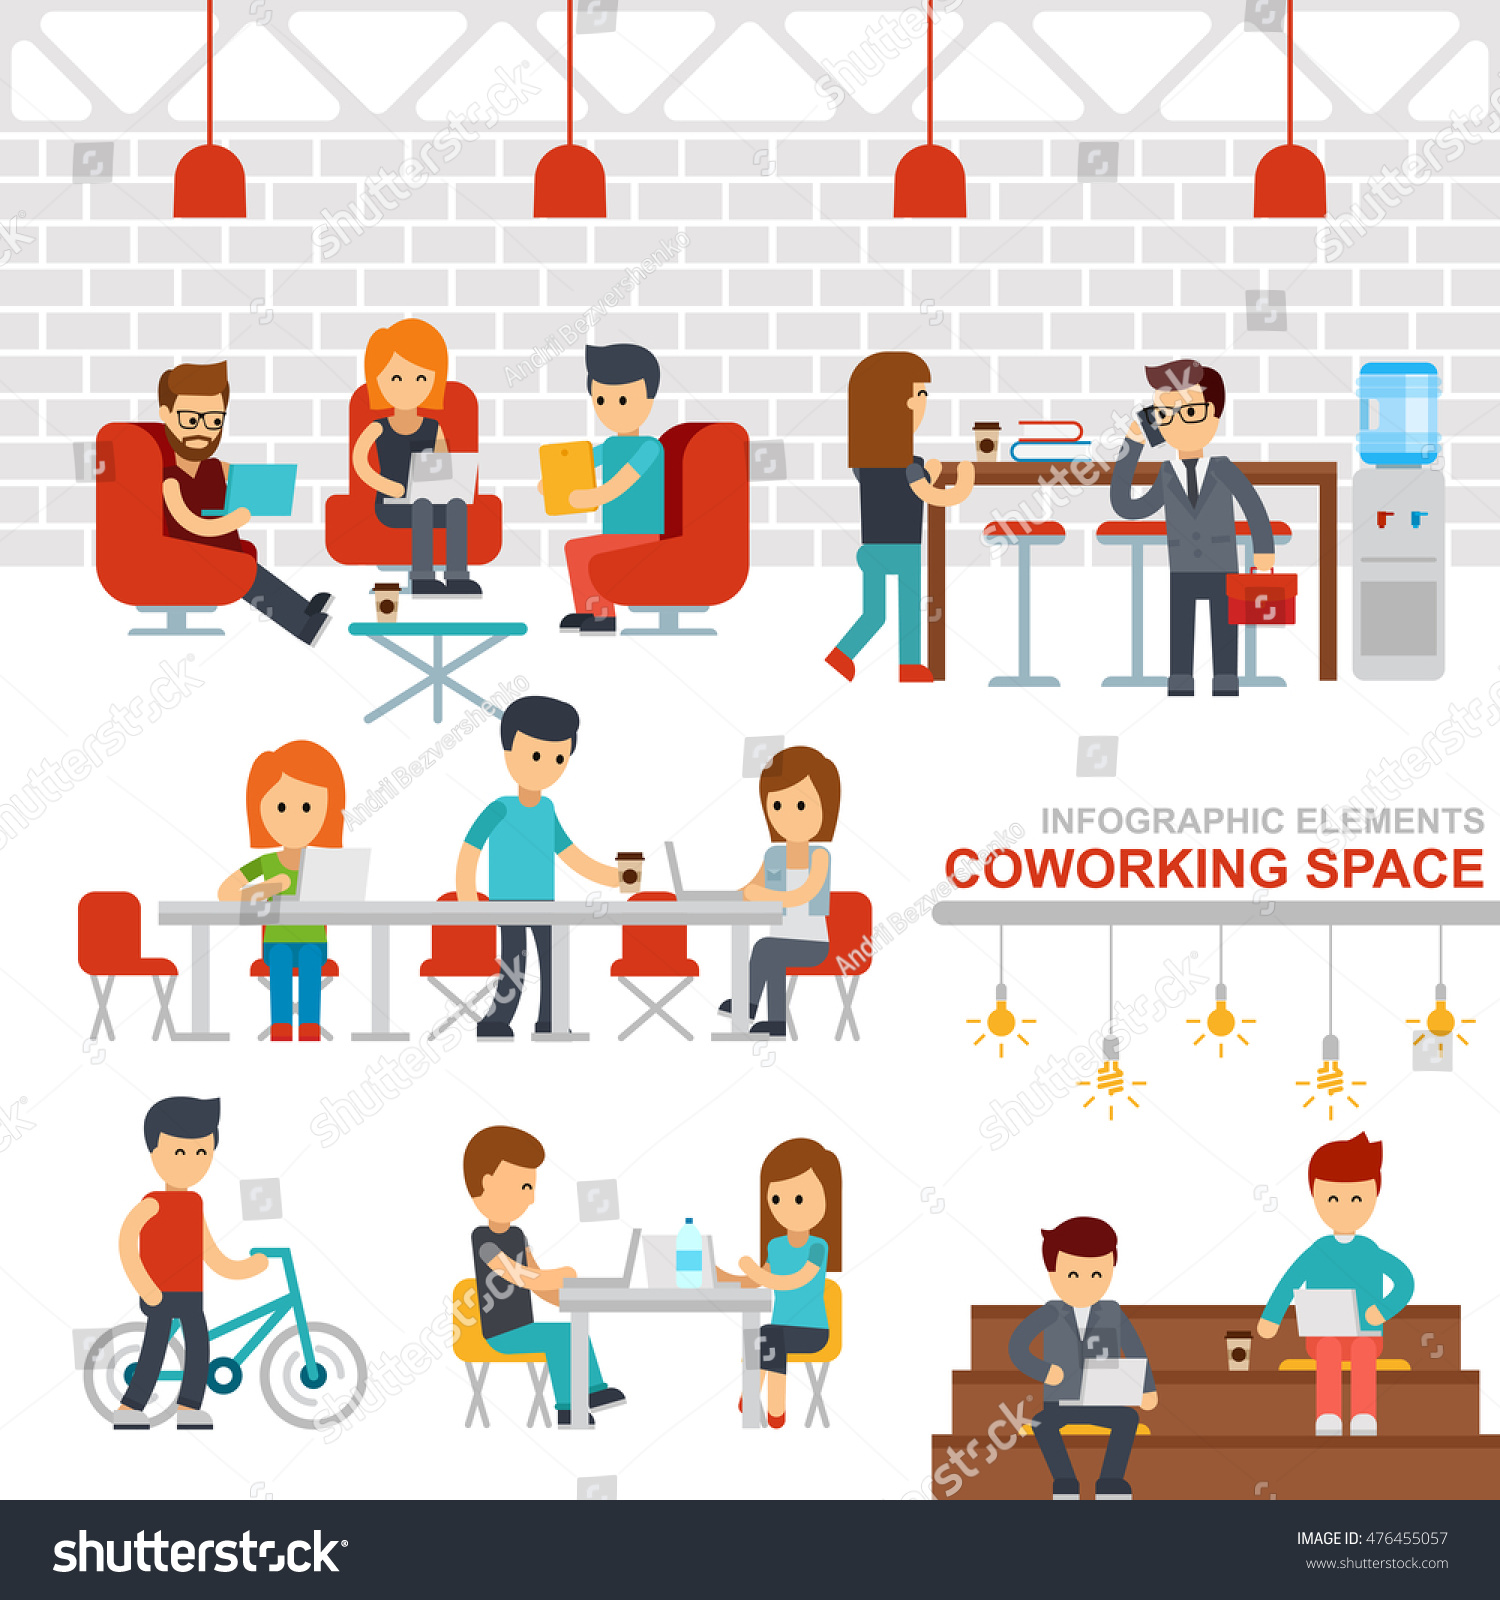 Coworking Space Infographic Elements Vector Flat Stock